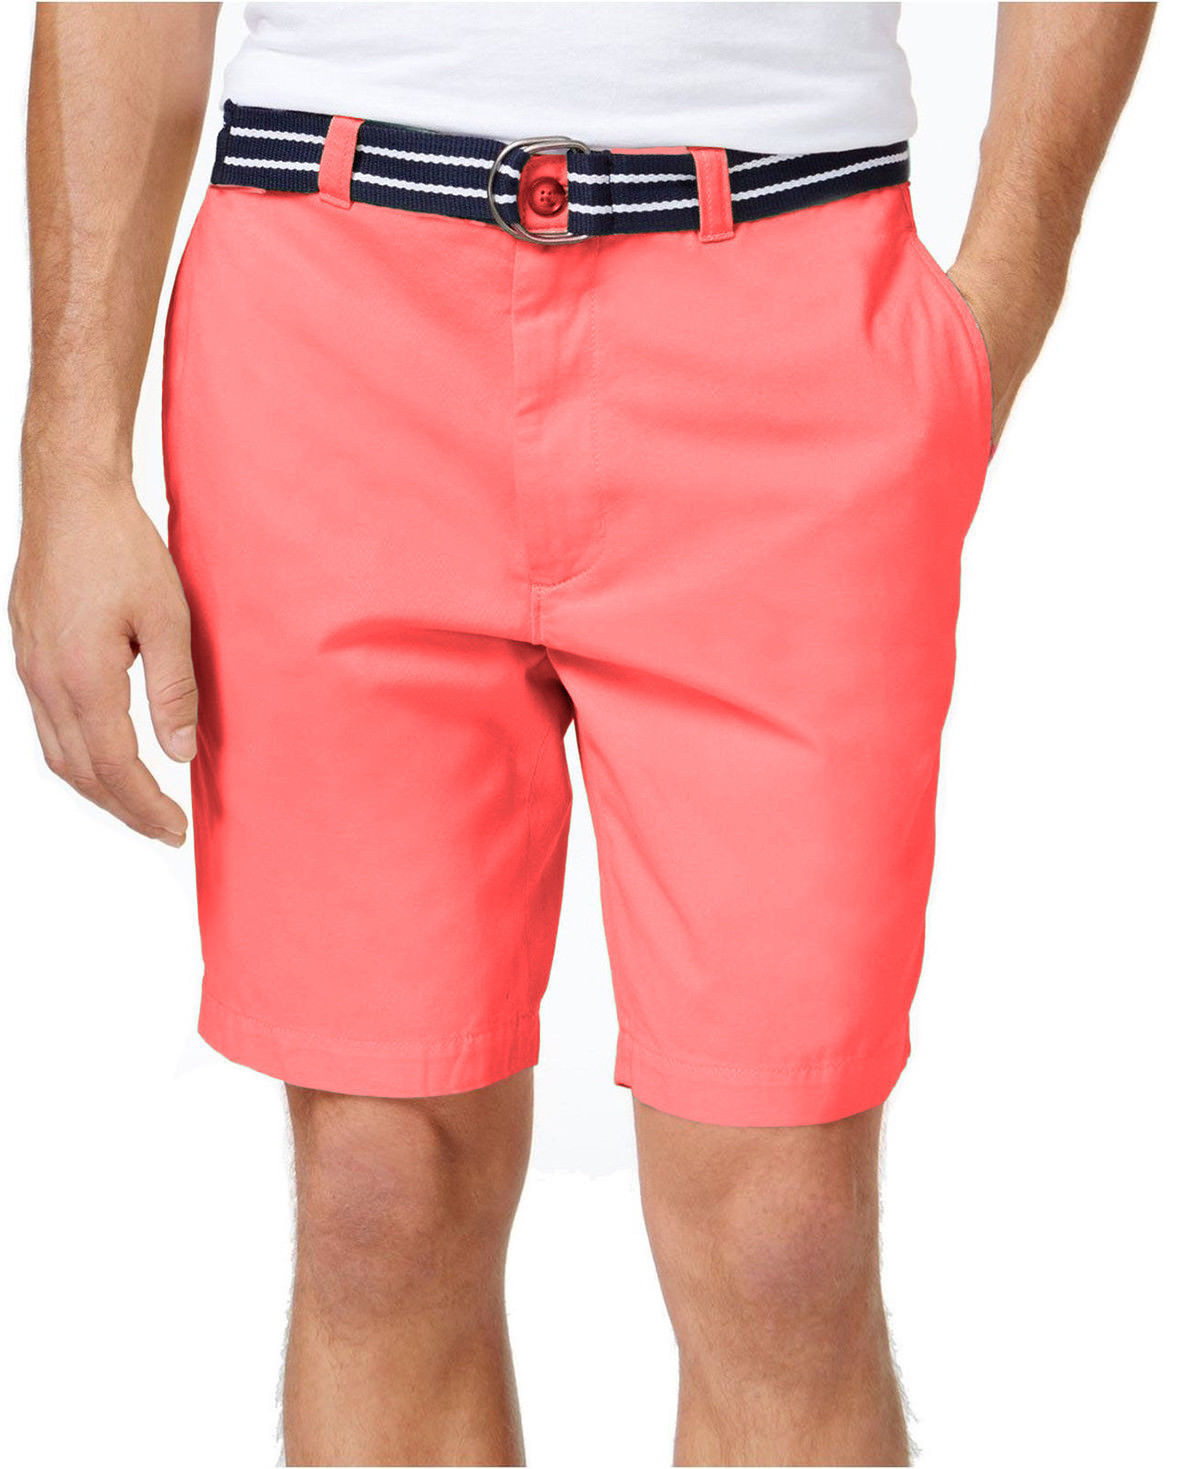 "NEW MENS CLUB ROOM FLAT FRONT 9"" CORAL COTTON BELTED CHINO SHORTS 38"